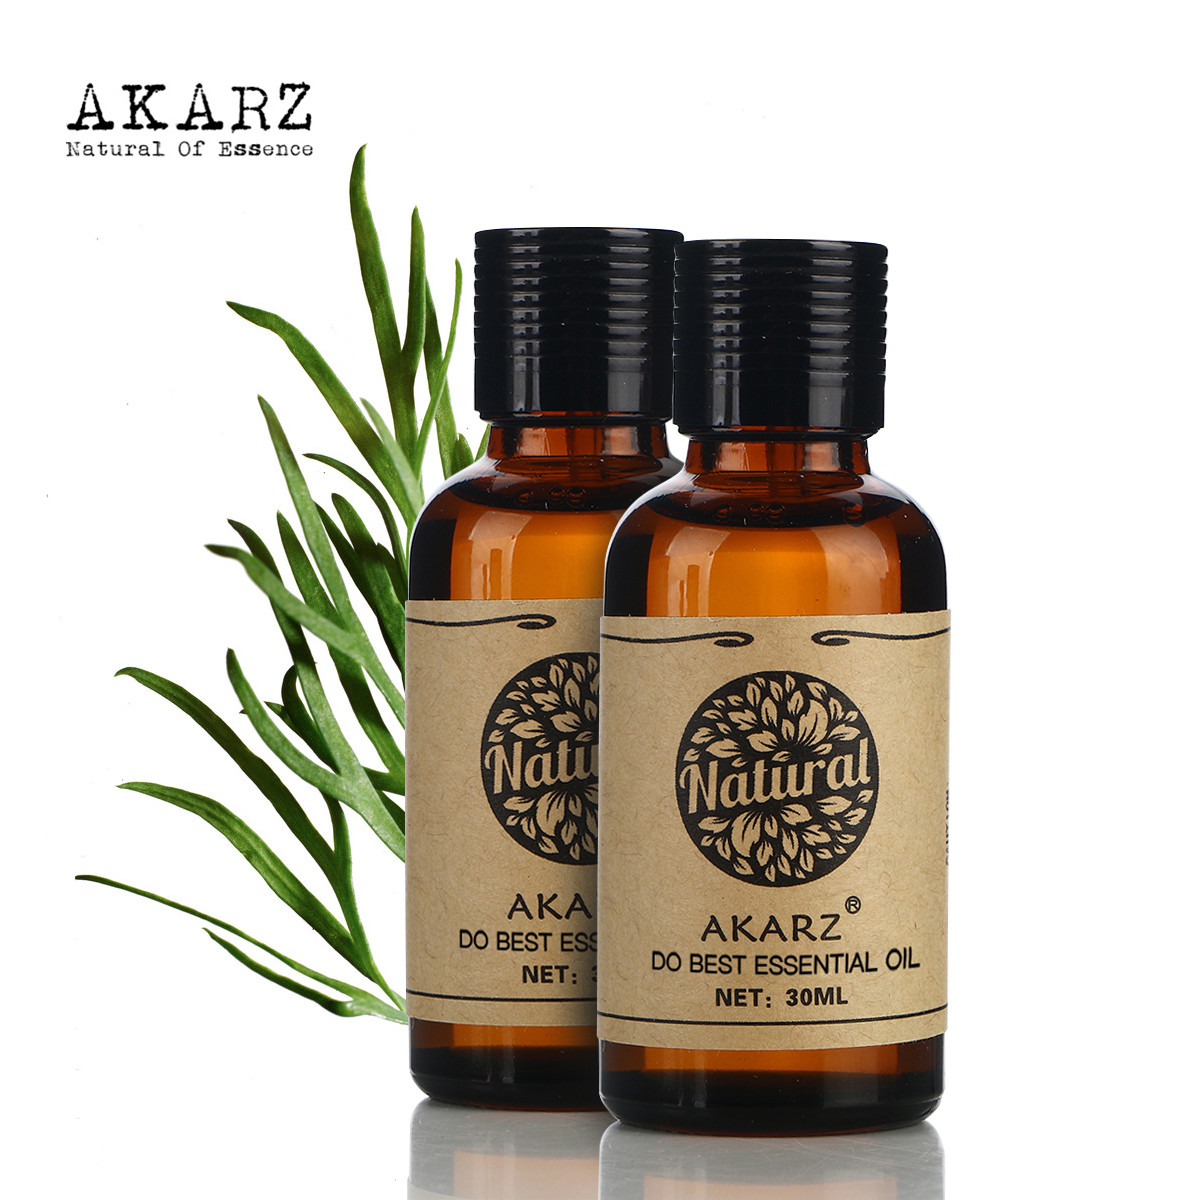 AKARZ Famous brand hair care set natural aromatherapy castor oil Rosemary essential oil Repair skin care Massage Oil 30ml*2 famous brand oroaroma castor oil natural aromatherapy high capacity skin body care massage spa castor essential oil